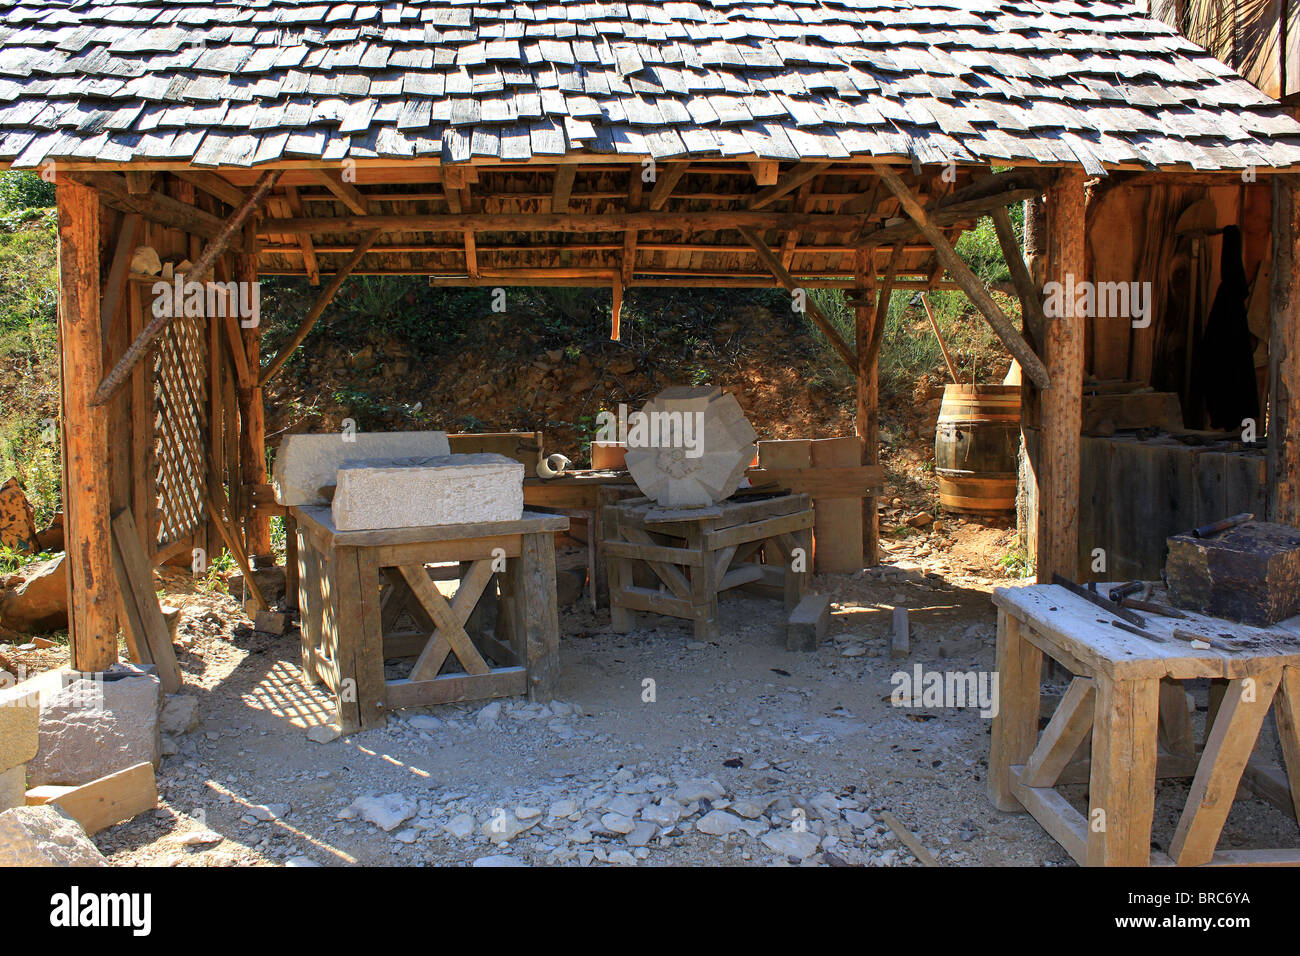 sculpture workshop for medieval stonemasons - Stock Image